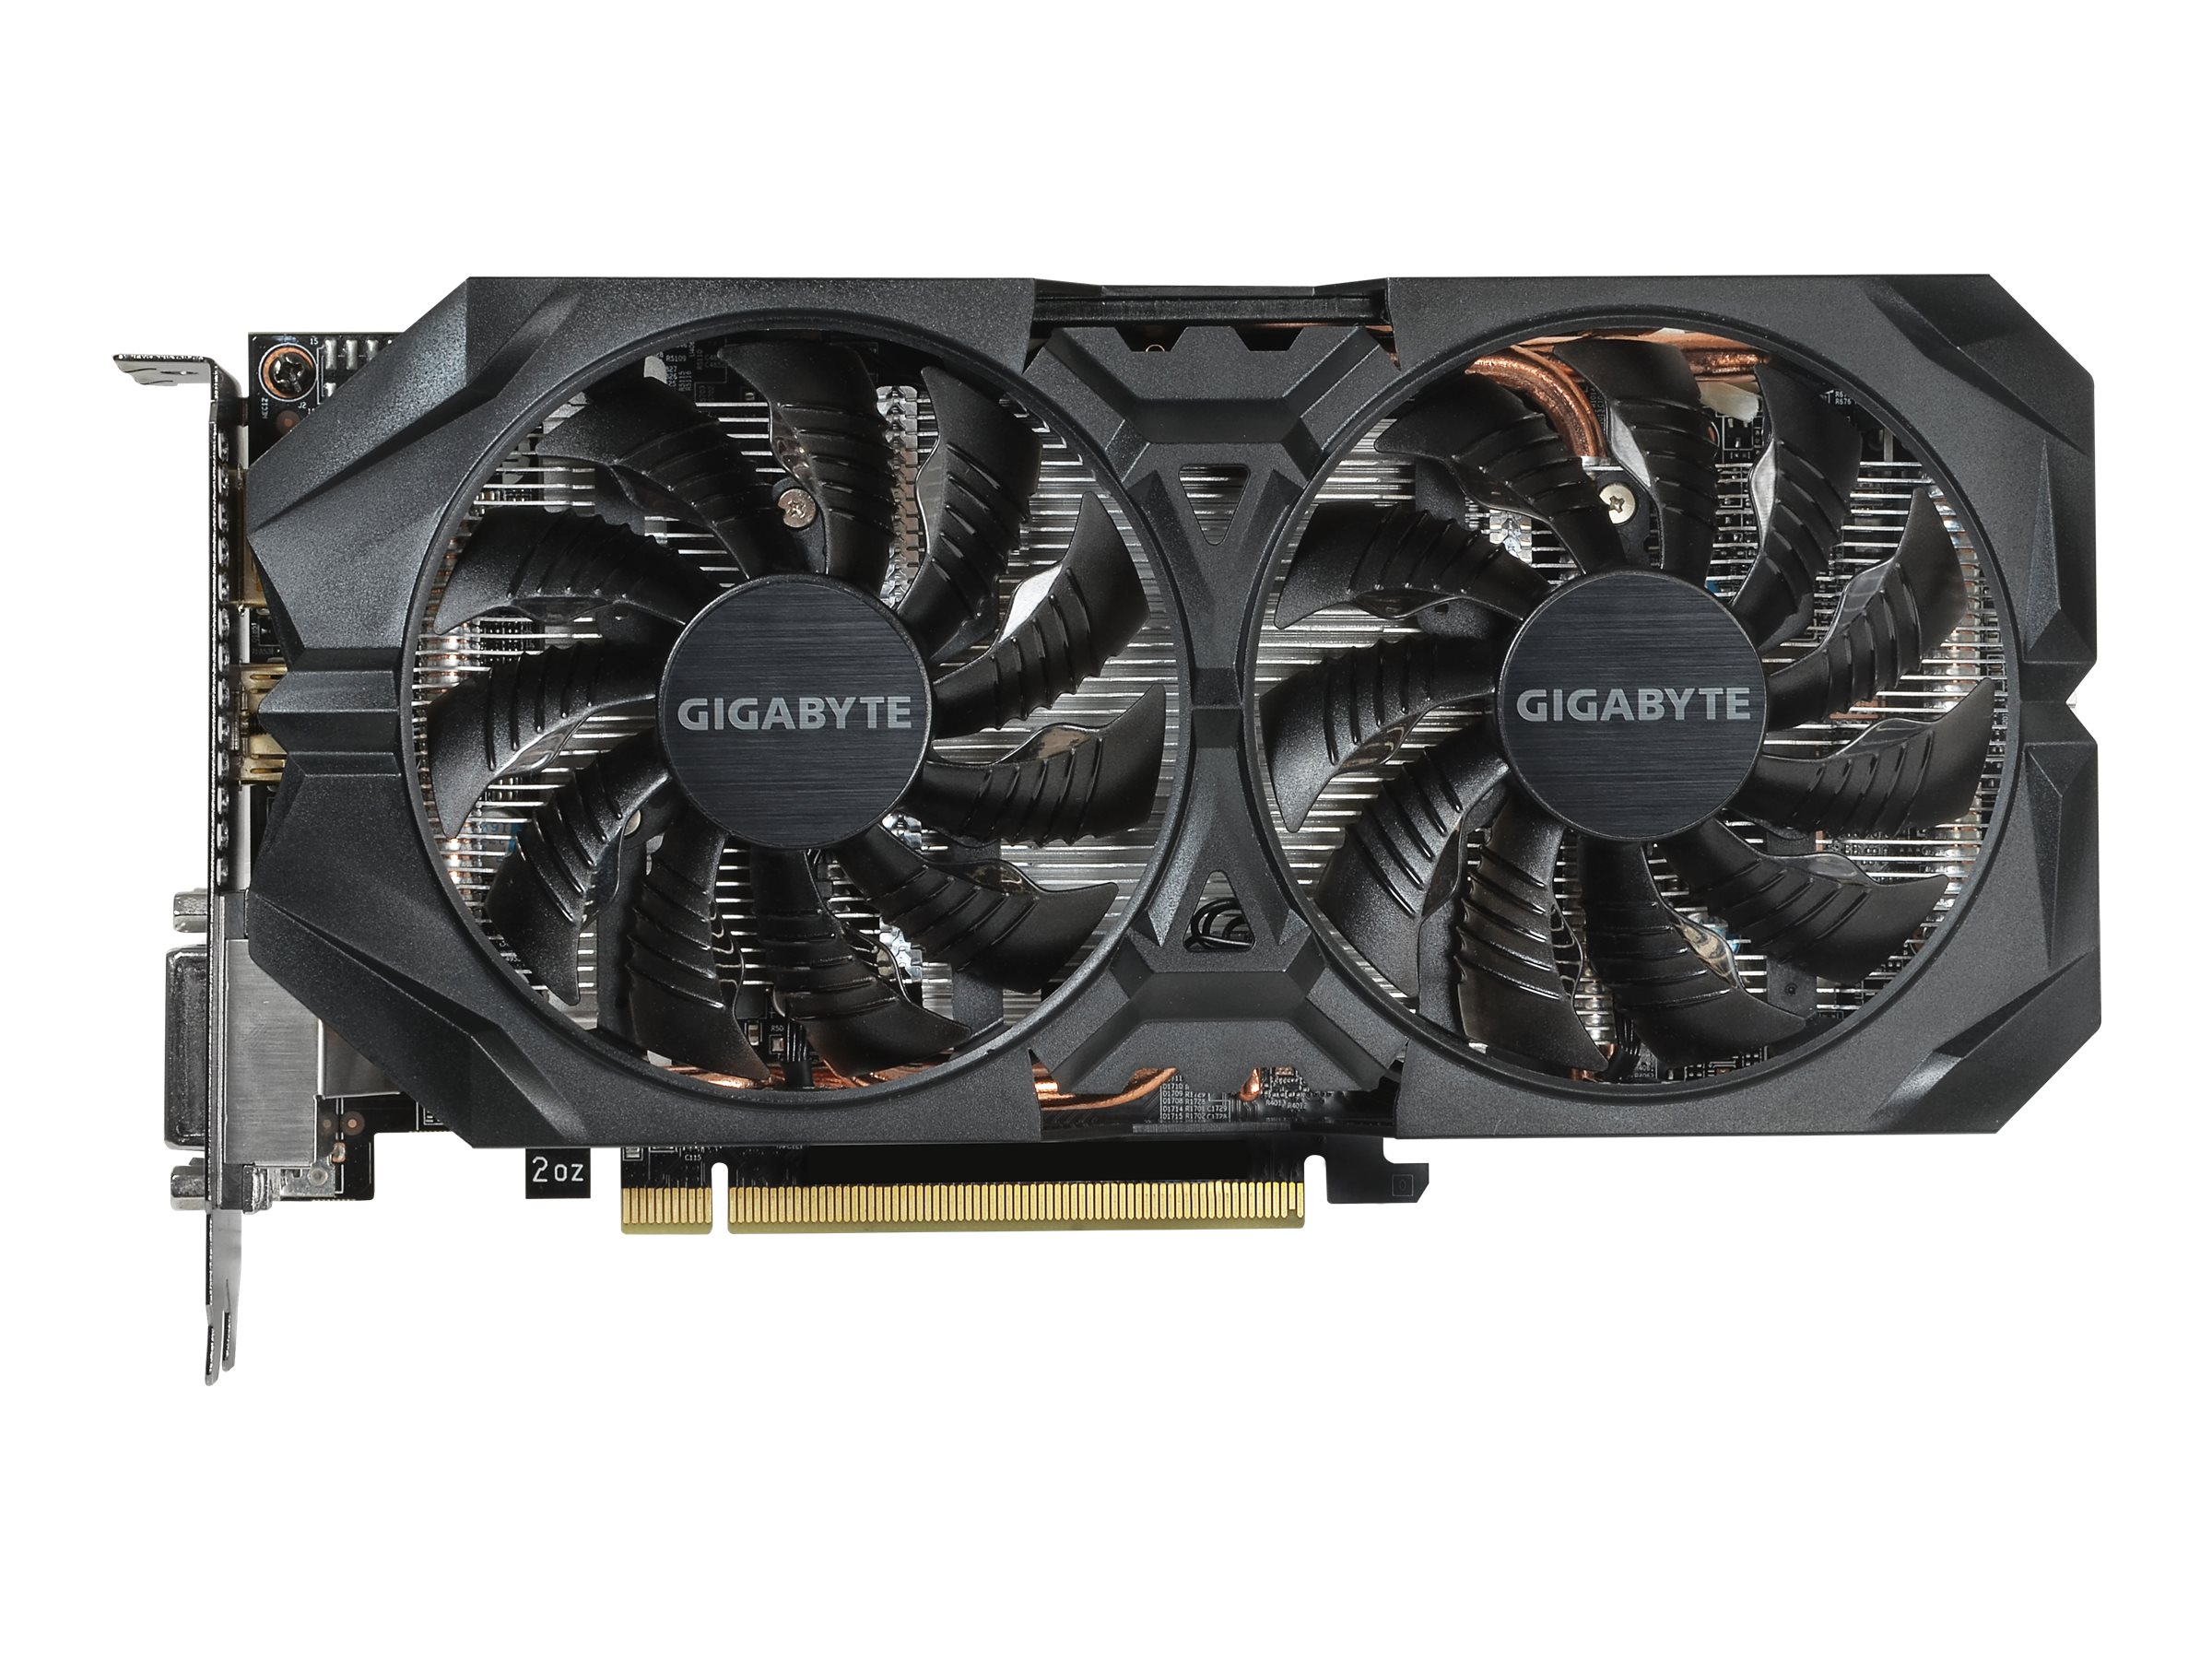 Gigabyte Technology GV-R938XG1 GAMING-4GD Image 1